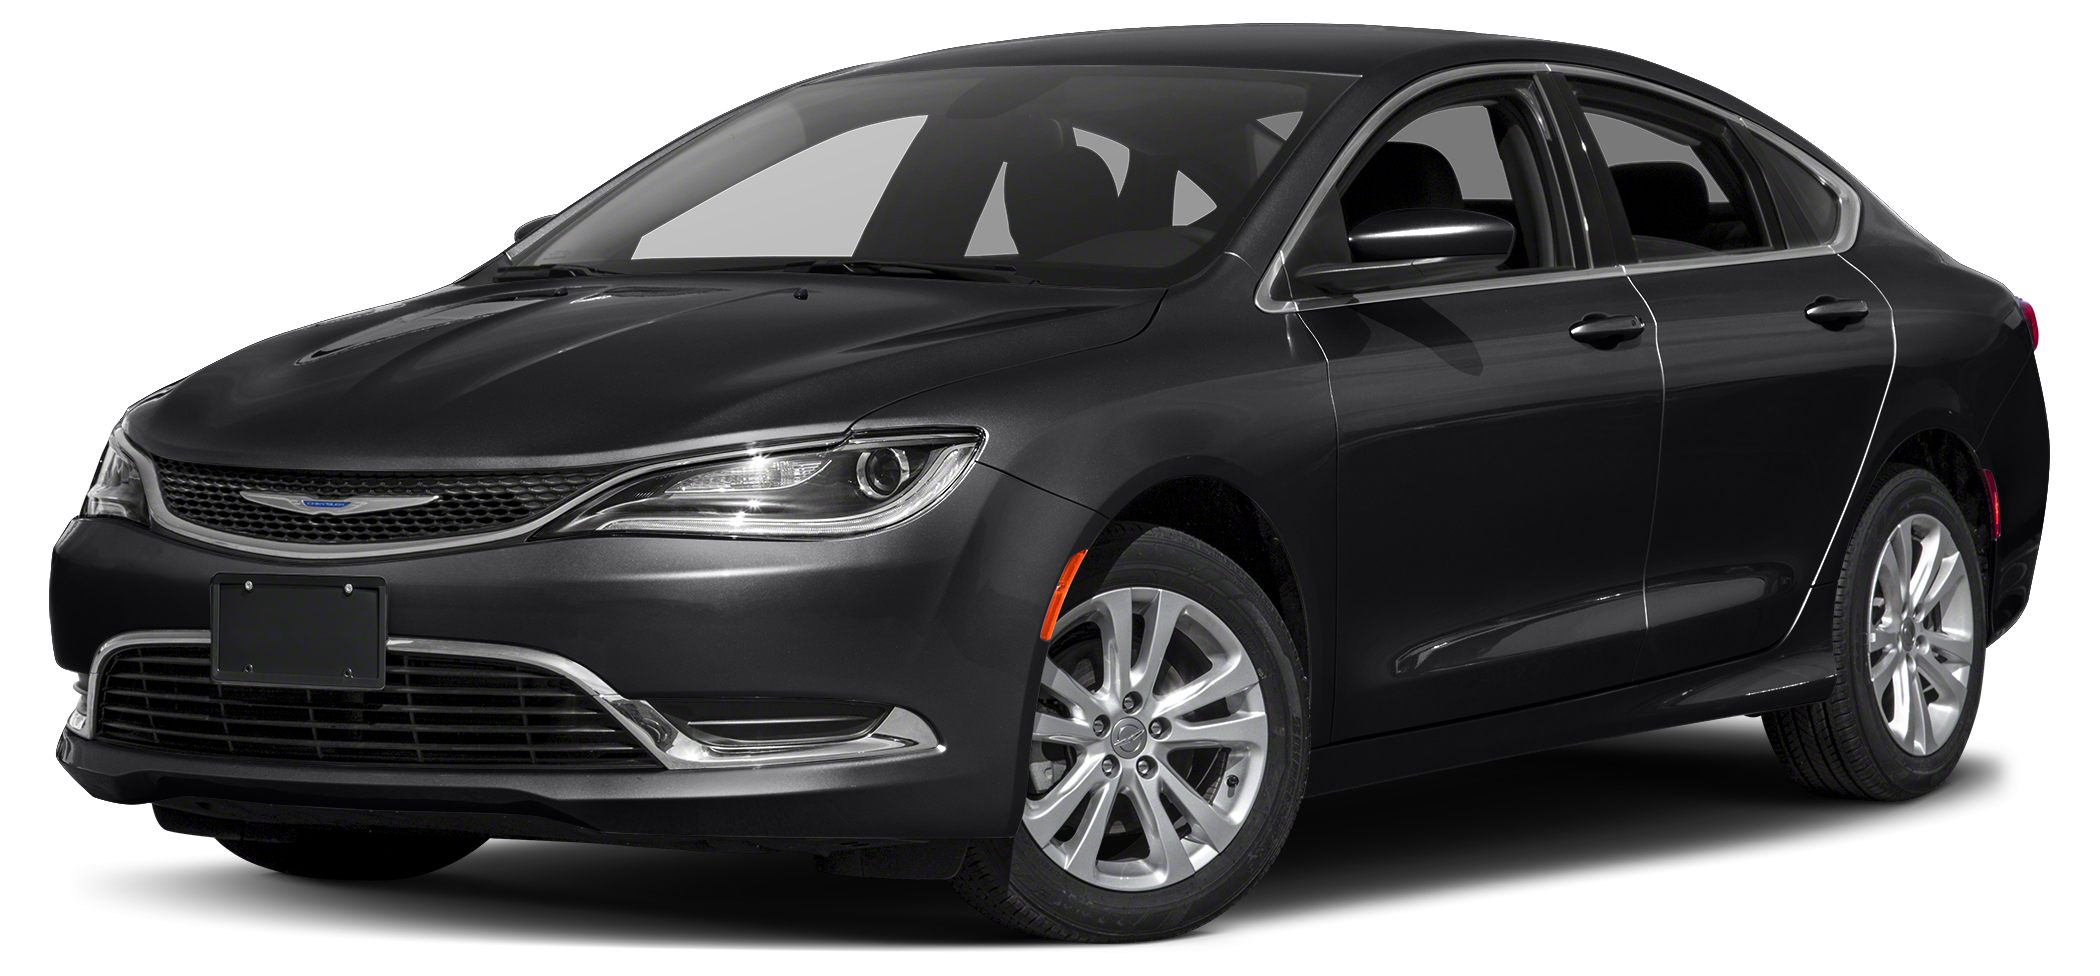 2017 Chrysler 200 Limited FUEL EFFICIENT 36 MPG Hwy23 MPG City CARFAX 1-Owner Superb Condition